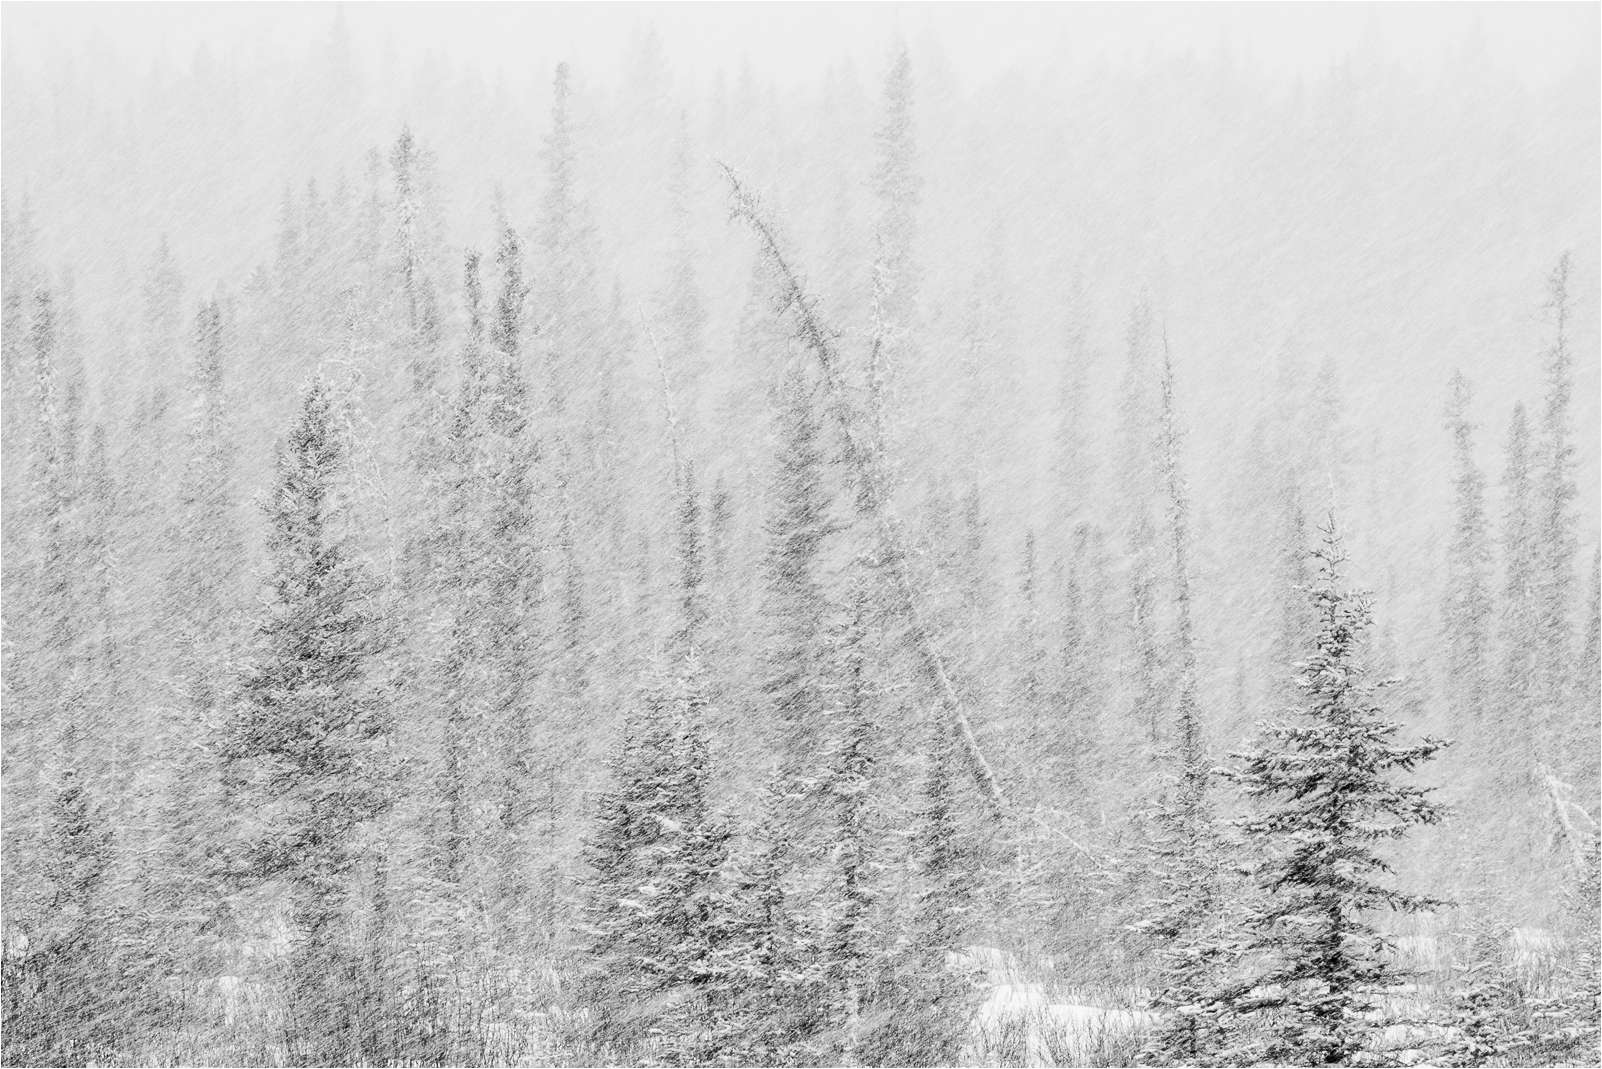 Snowstorm through the trees c2a9 christopher martin 9870